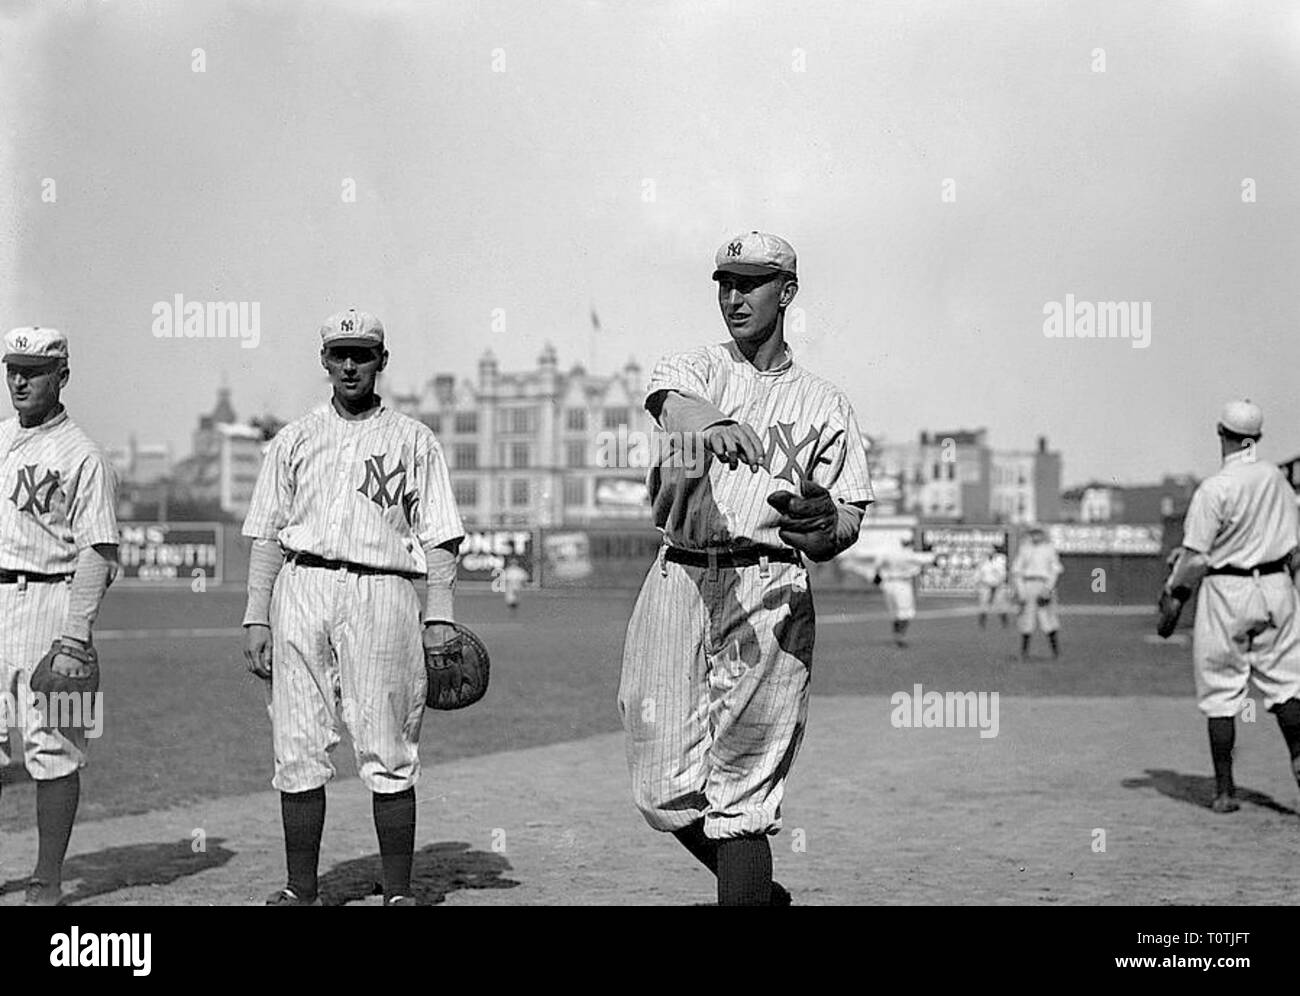 Bill Stumpf, New York Highlanders, at Hilltop Park, New York 1912. Stock Photo